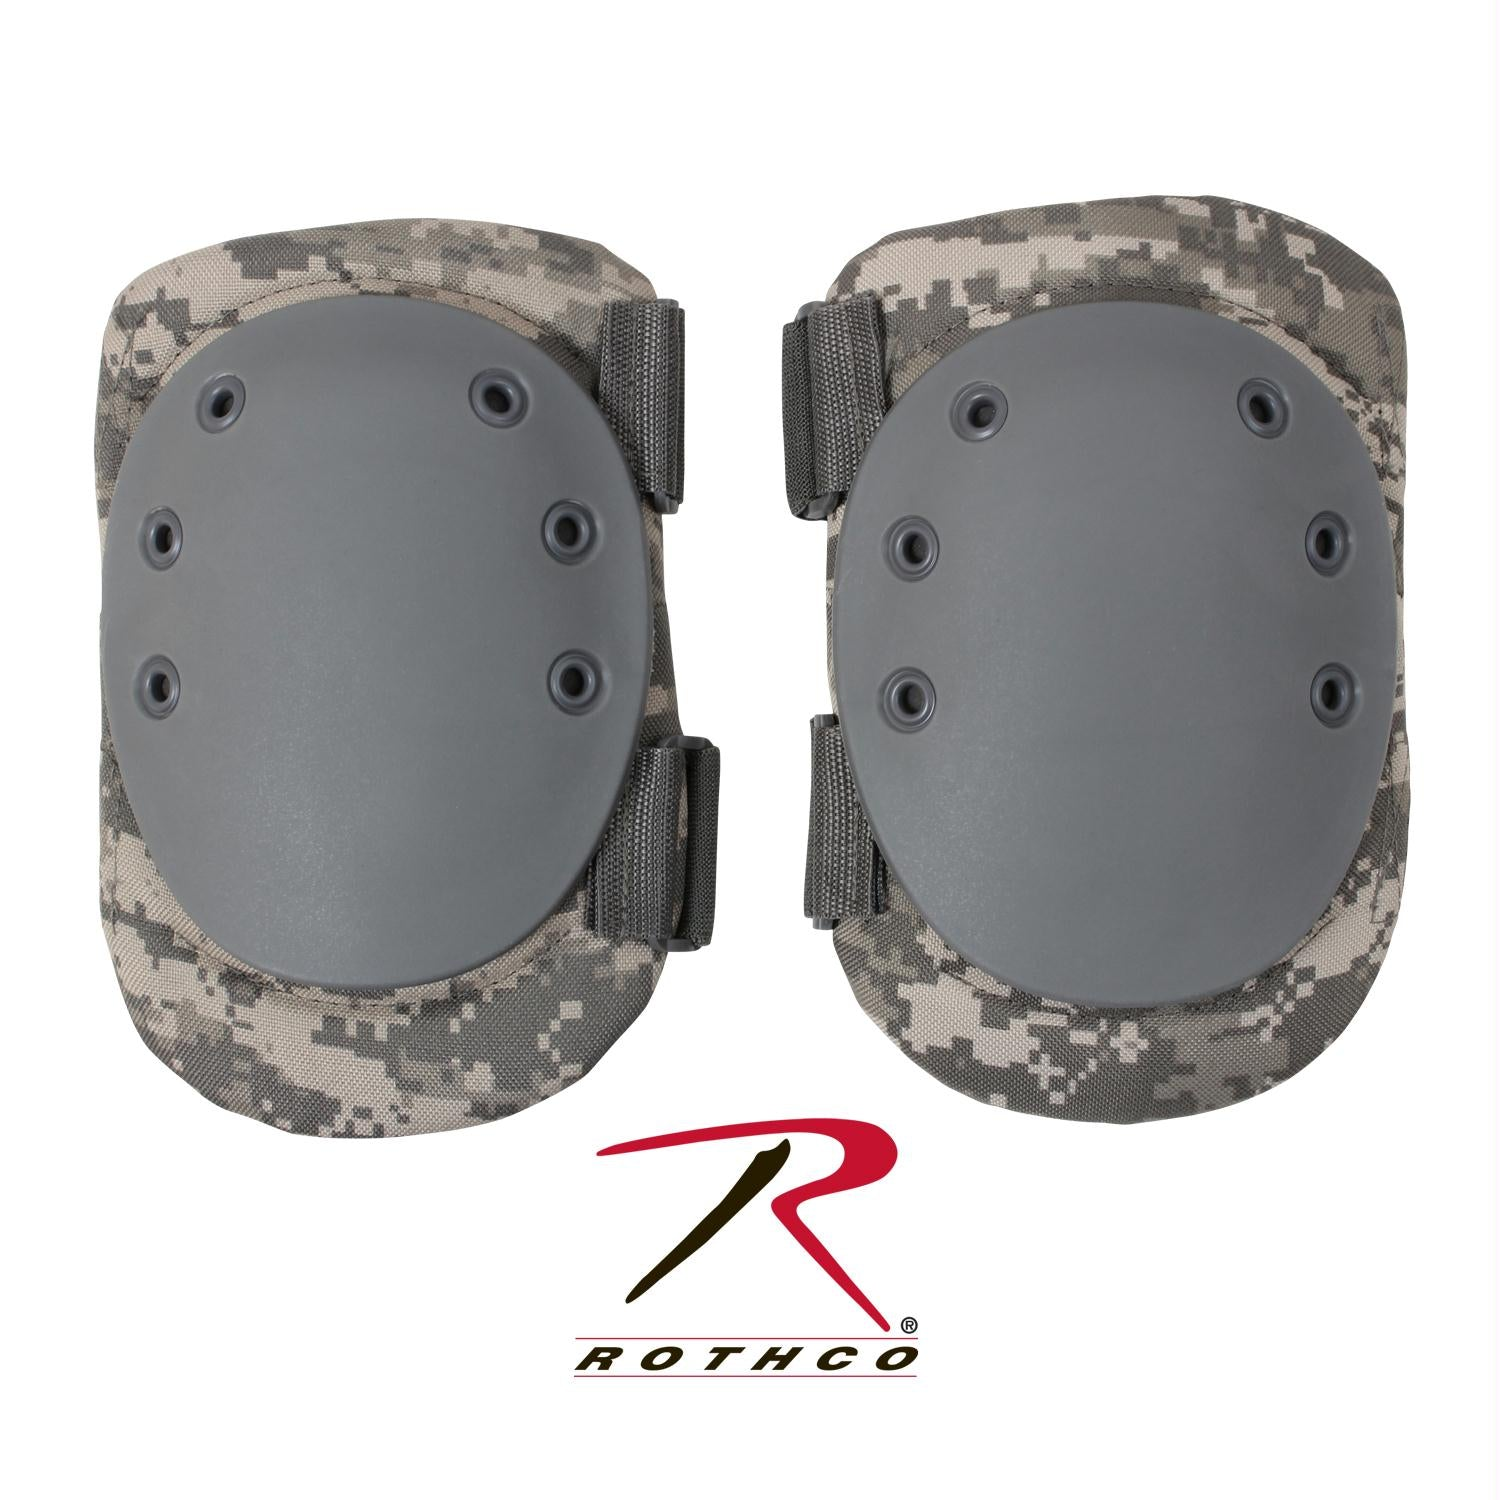 Rothco Tactical Protective Gear Knee Pads - ACU Digital Camo